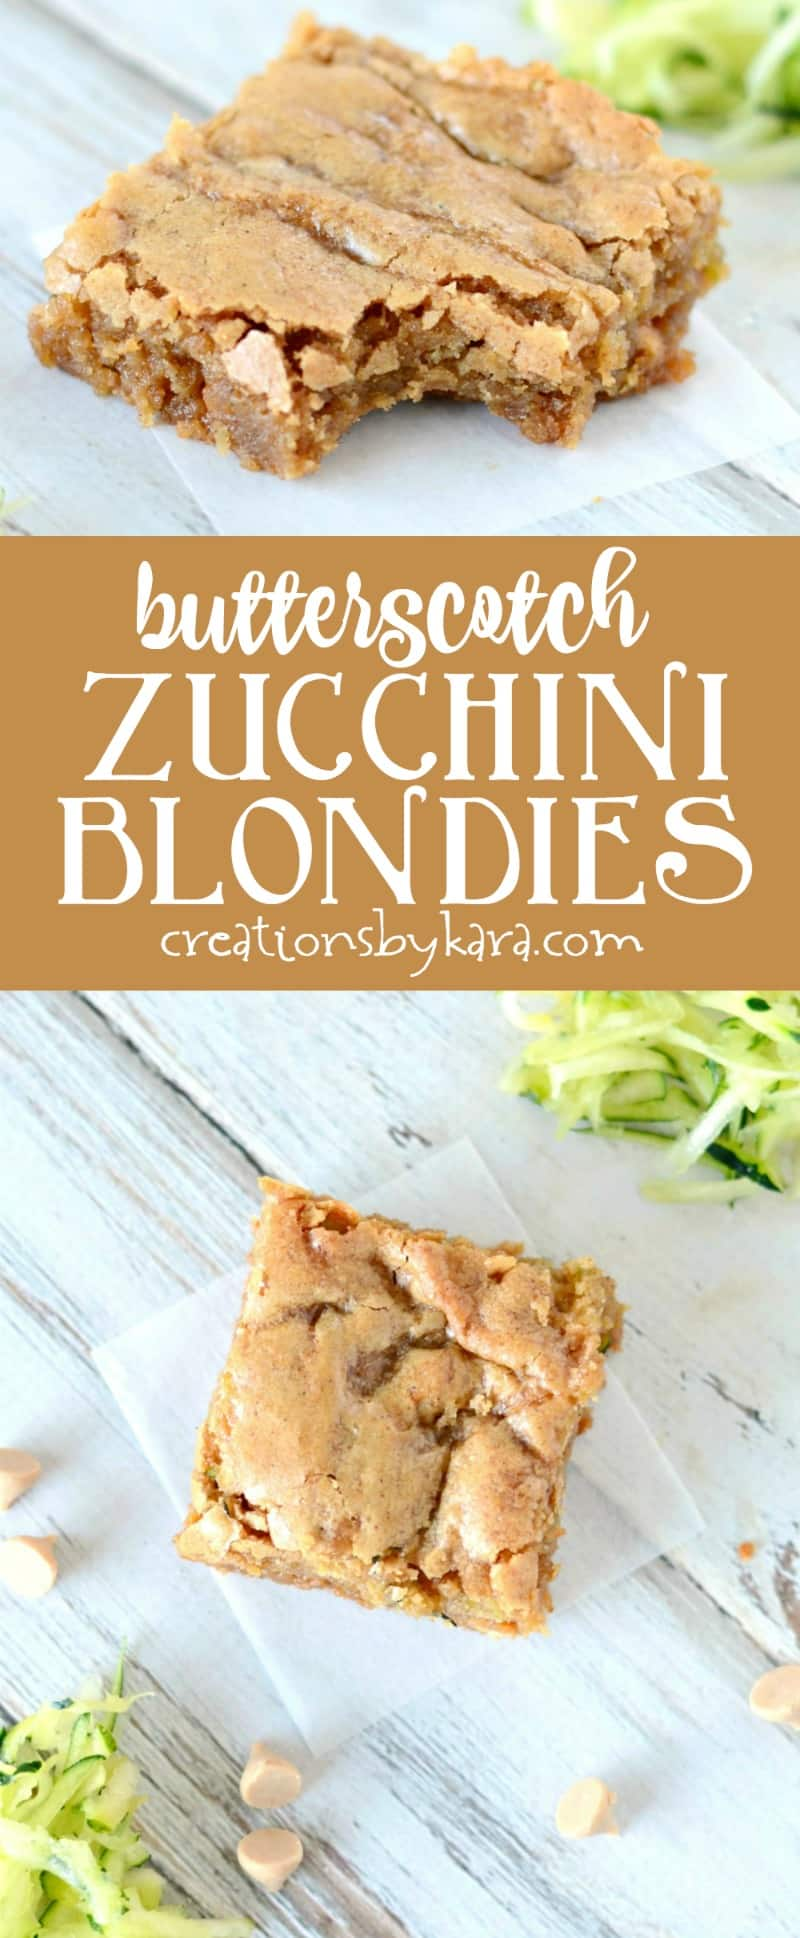 Recipe for rich and chewy butterscotch zucchini blondies. Sure to become a new favorite zucchini recipe! Browned butter makes these bars extra tasty!